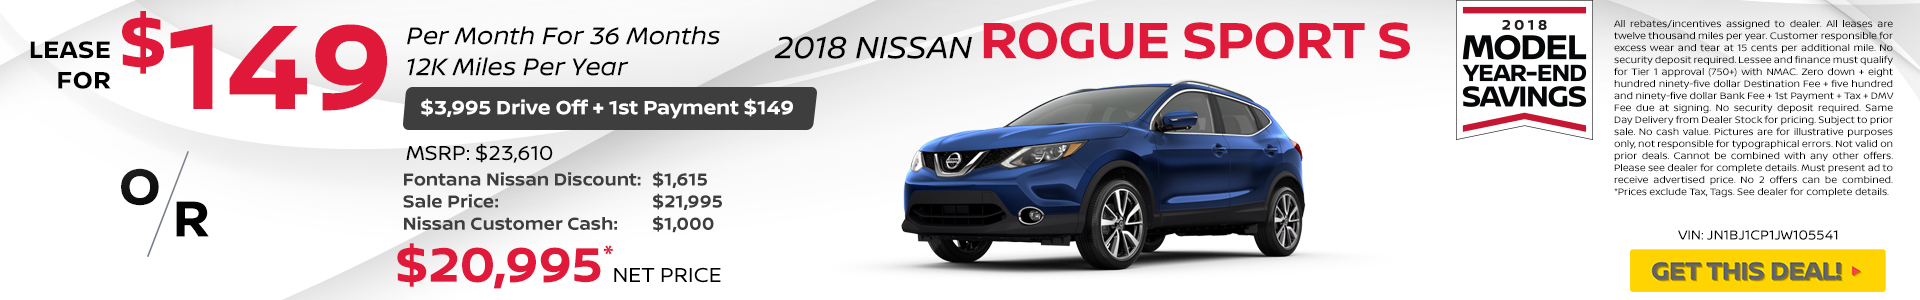 Nissan Rogue Sport $189 Lease or $23,995 Purchase